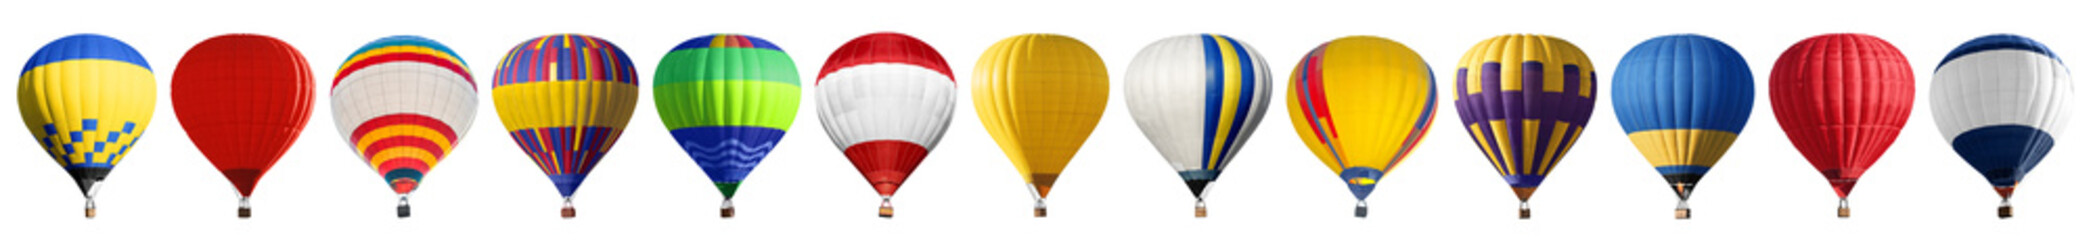 Foto op Plexiglas Ballon Set of bright colorful hot air balloons on white background